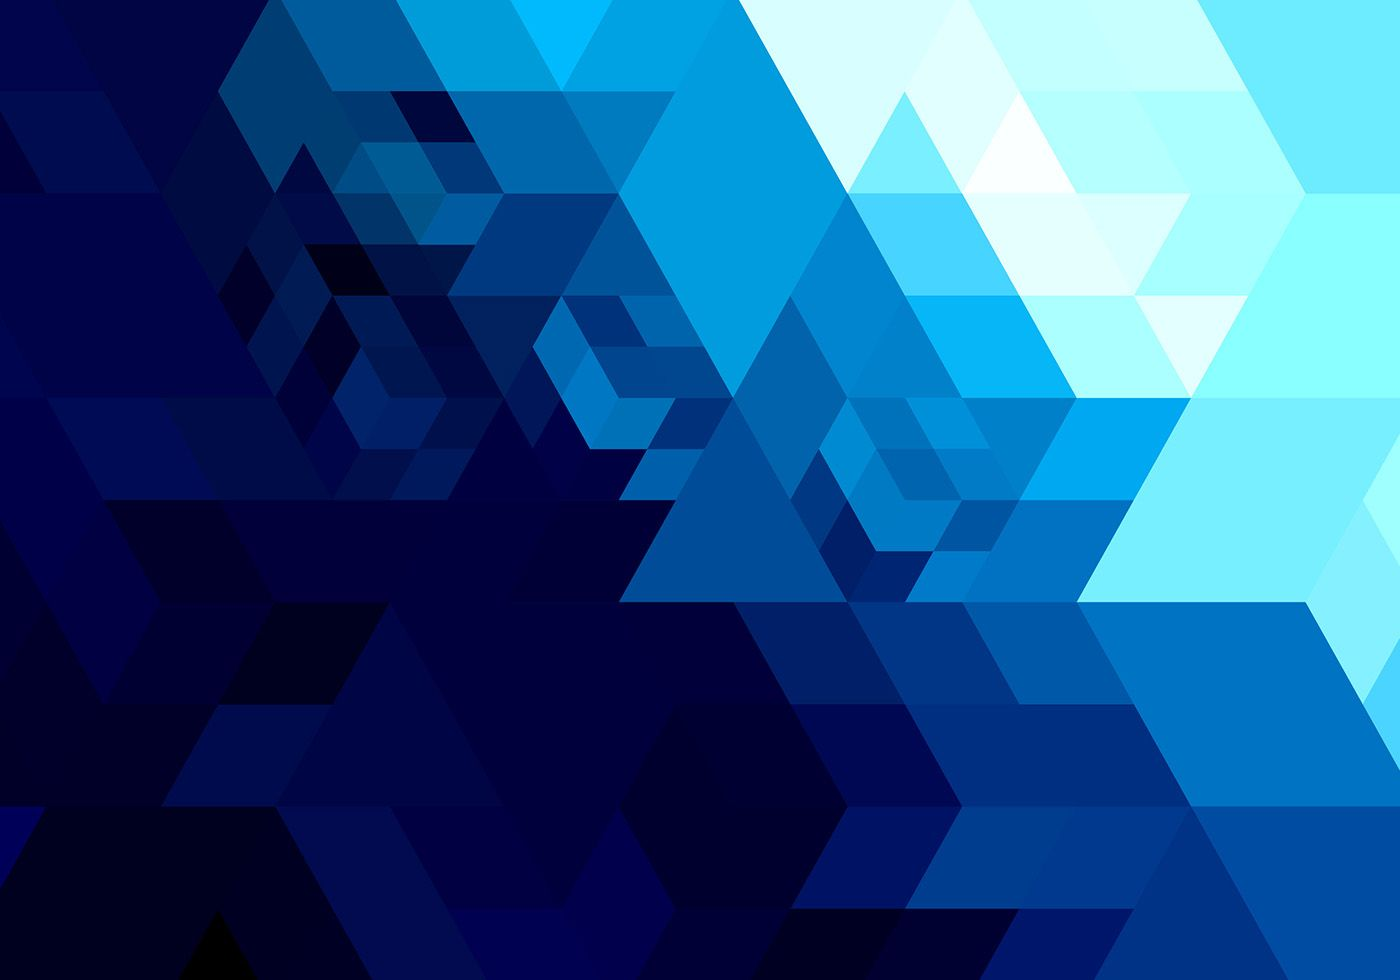 70 best free geometric shapes wallpapers - wallpaperaccess